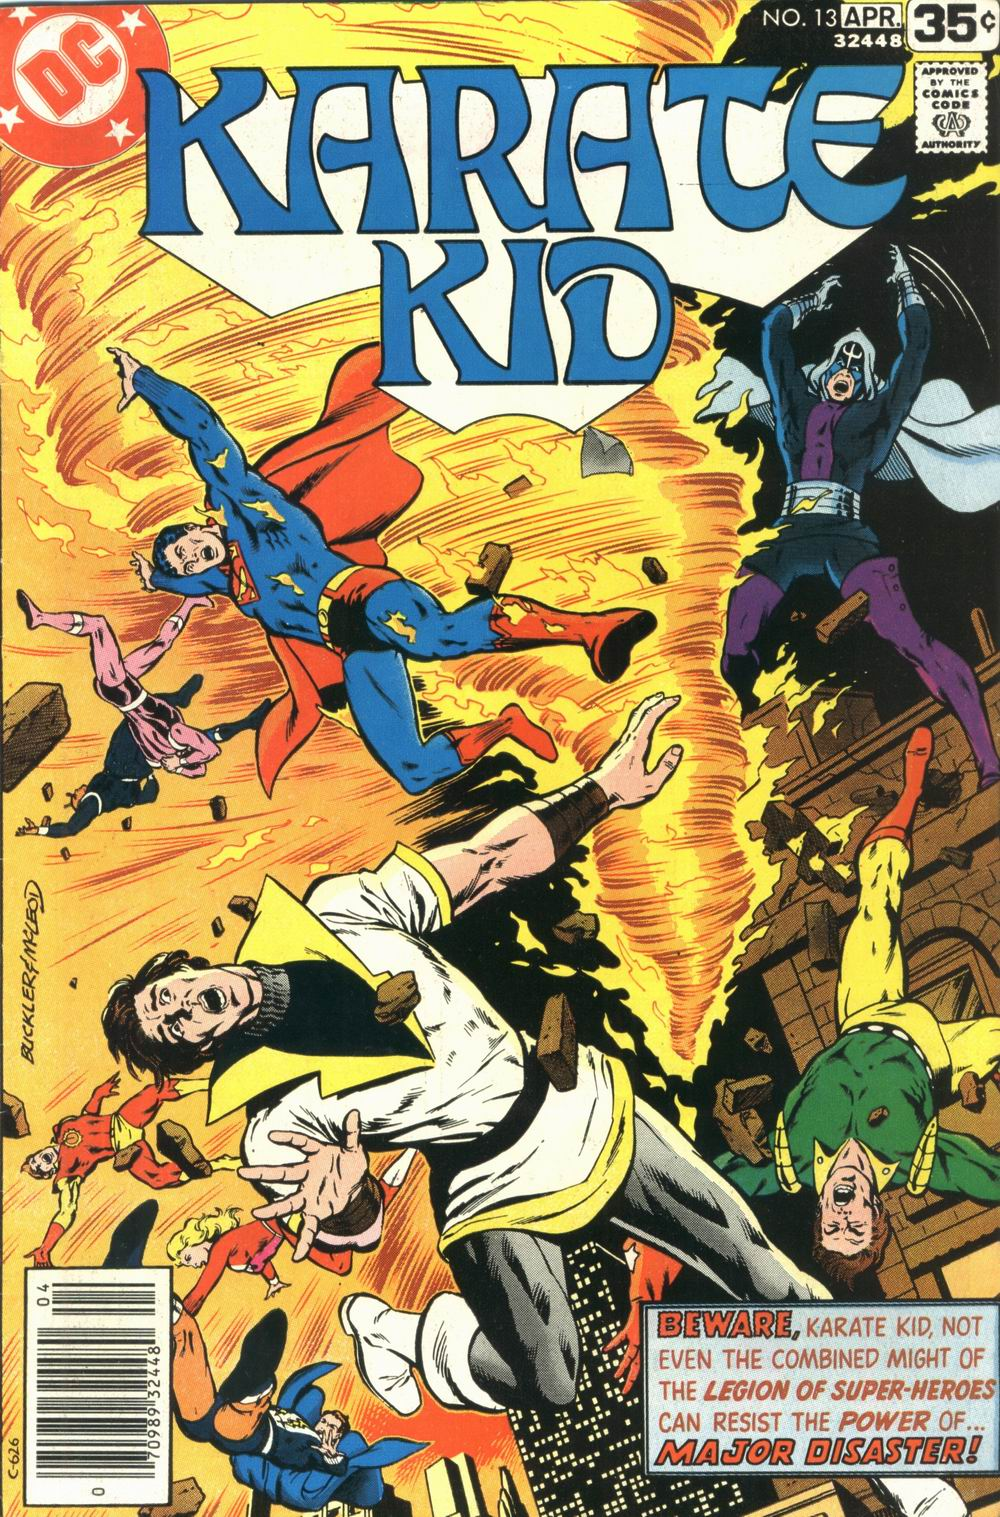 Karate Kid (1976) #13, cover penciled by Rich Buckler & inked by Bob McLeod.